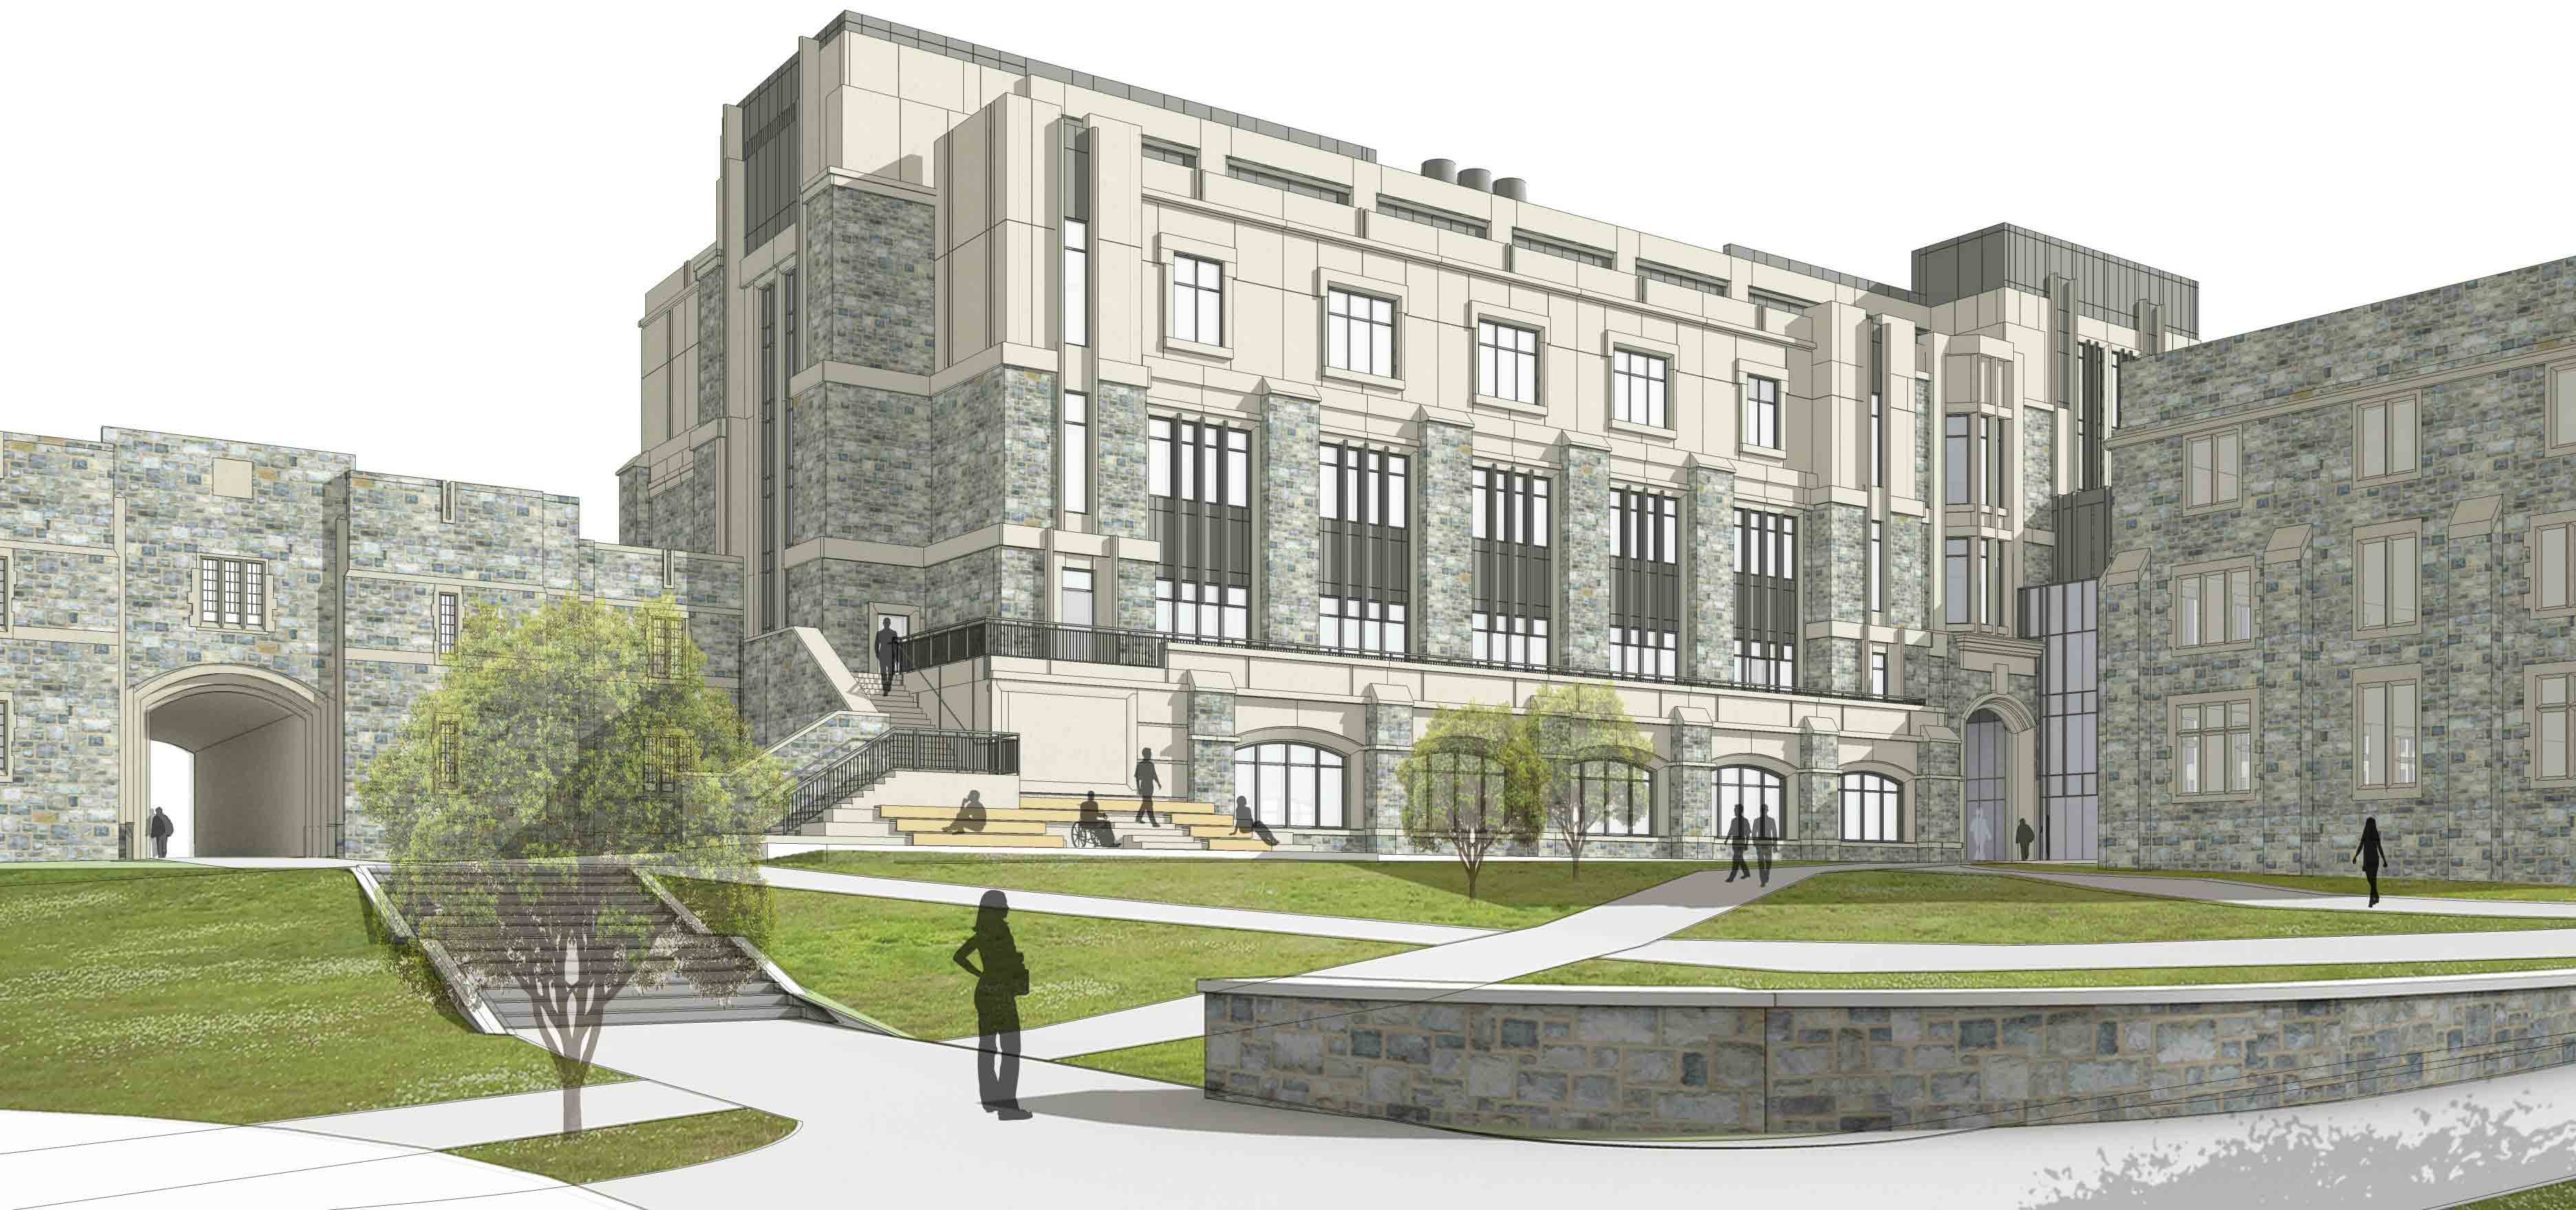 Architectural drawing of the new exterior of Holden Hall.